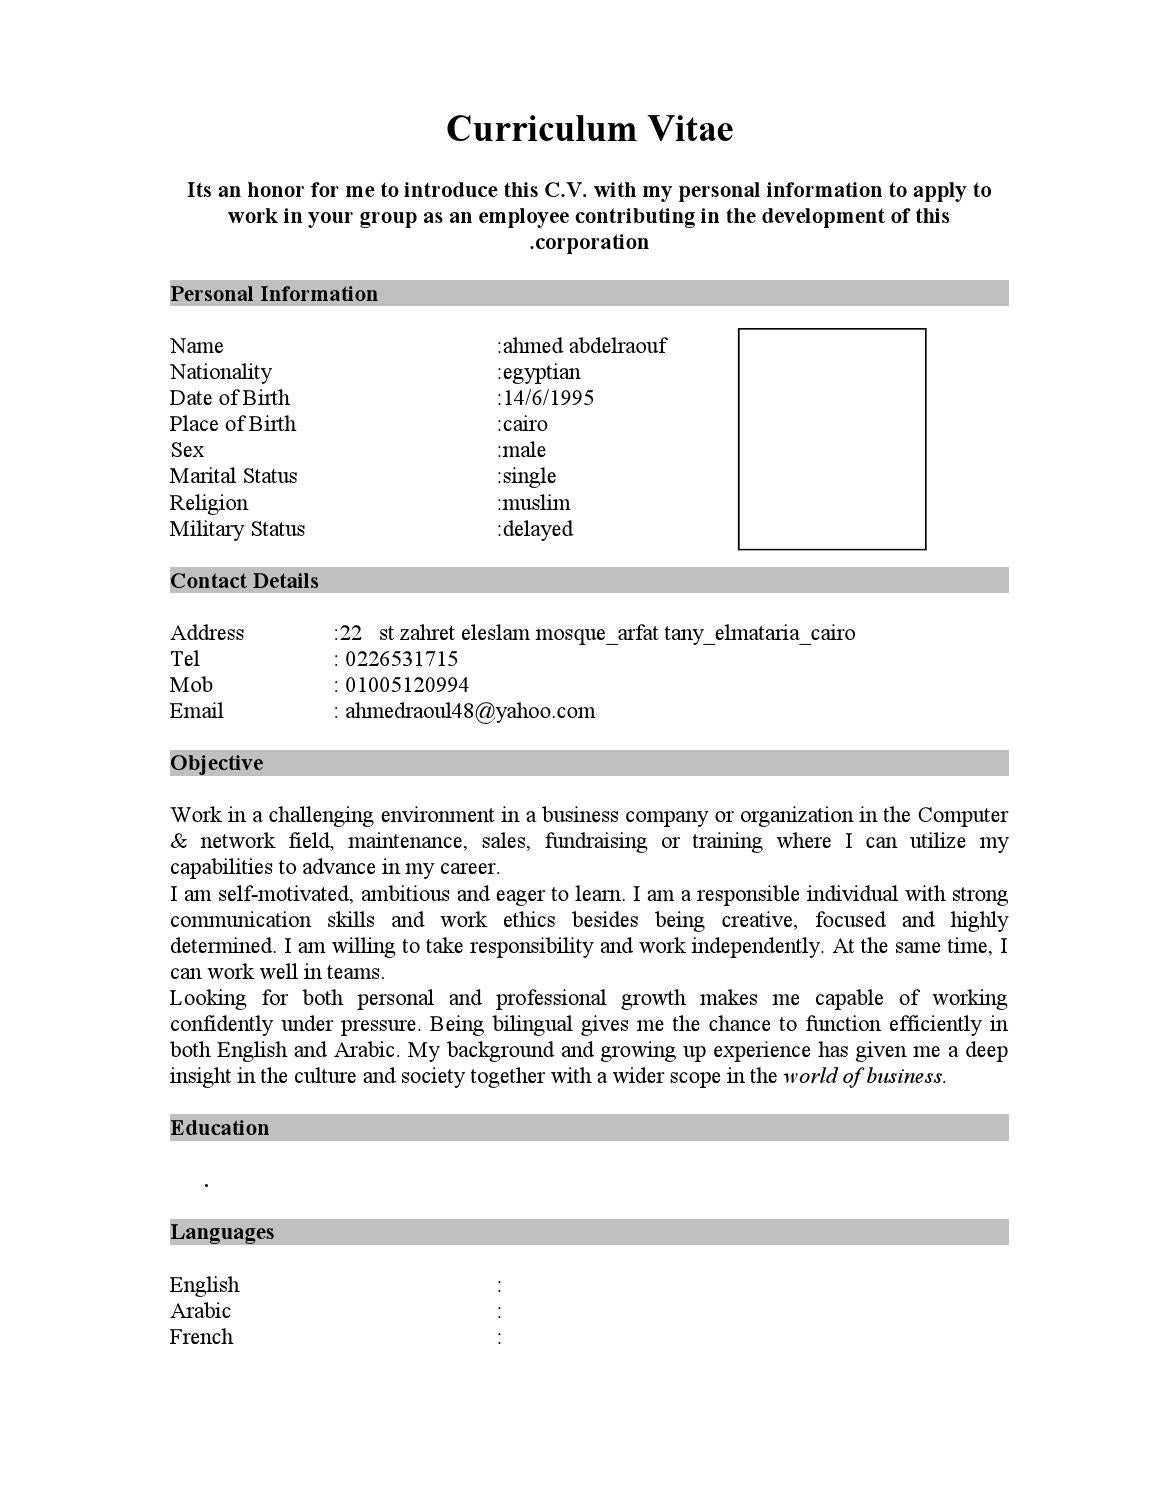 english cv form by ahmed raouf